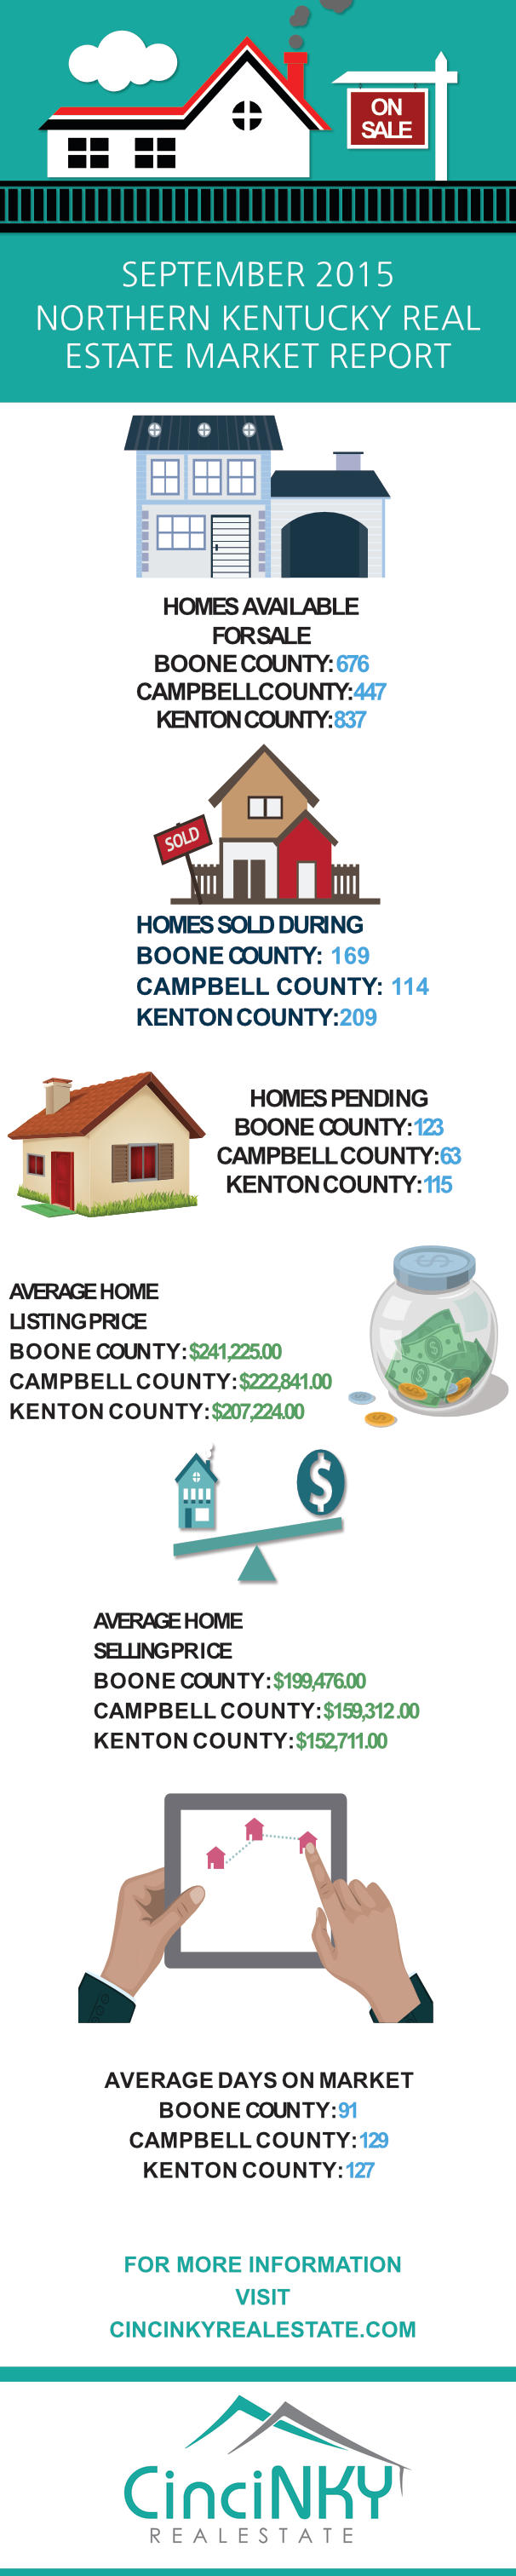 September 2015 Infographic depicting the northern kentucky real estate market results